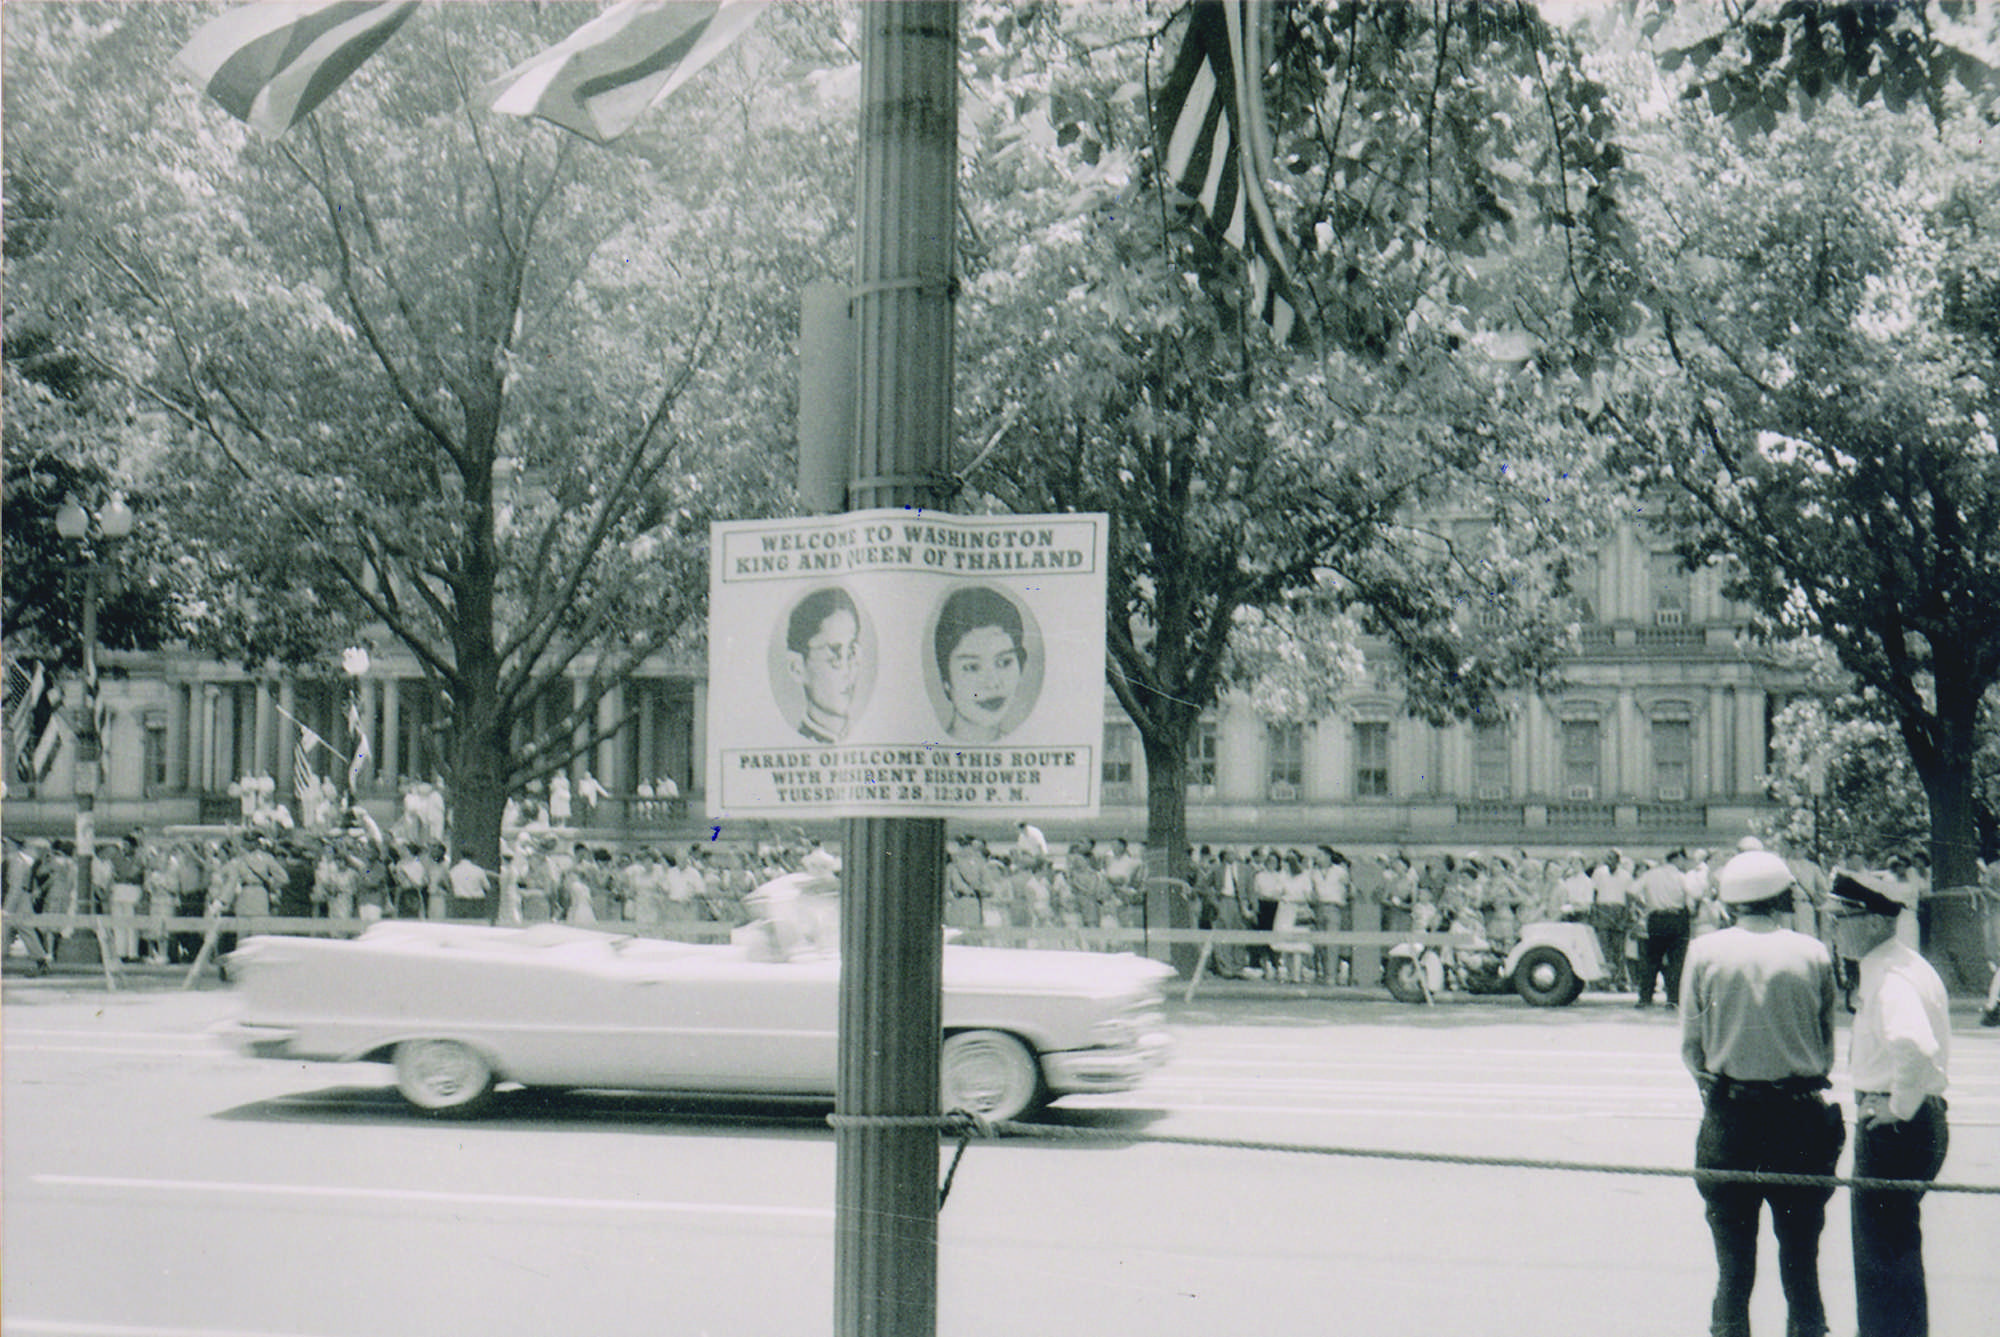 Images of Their Majesties posted on roadside